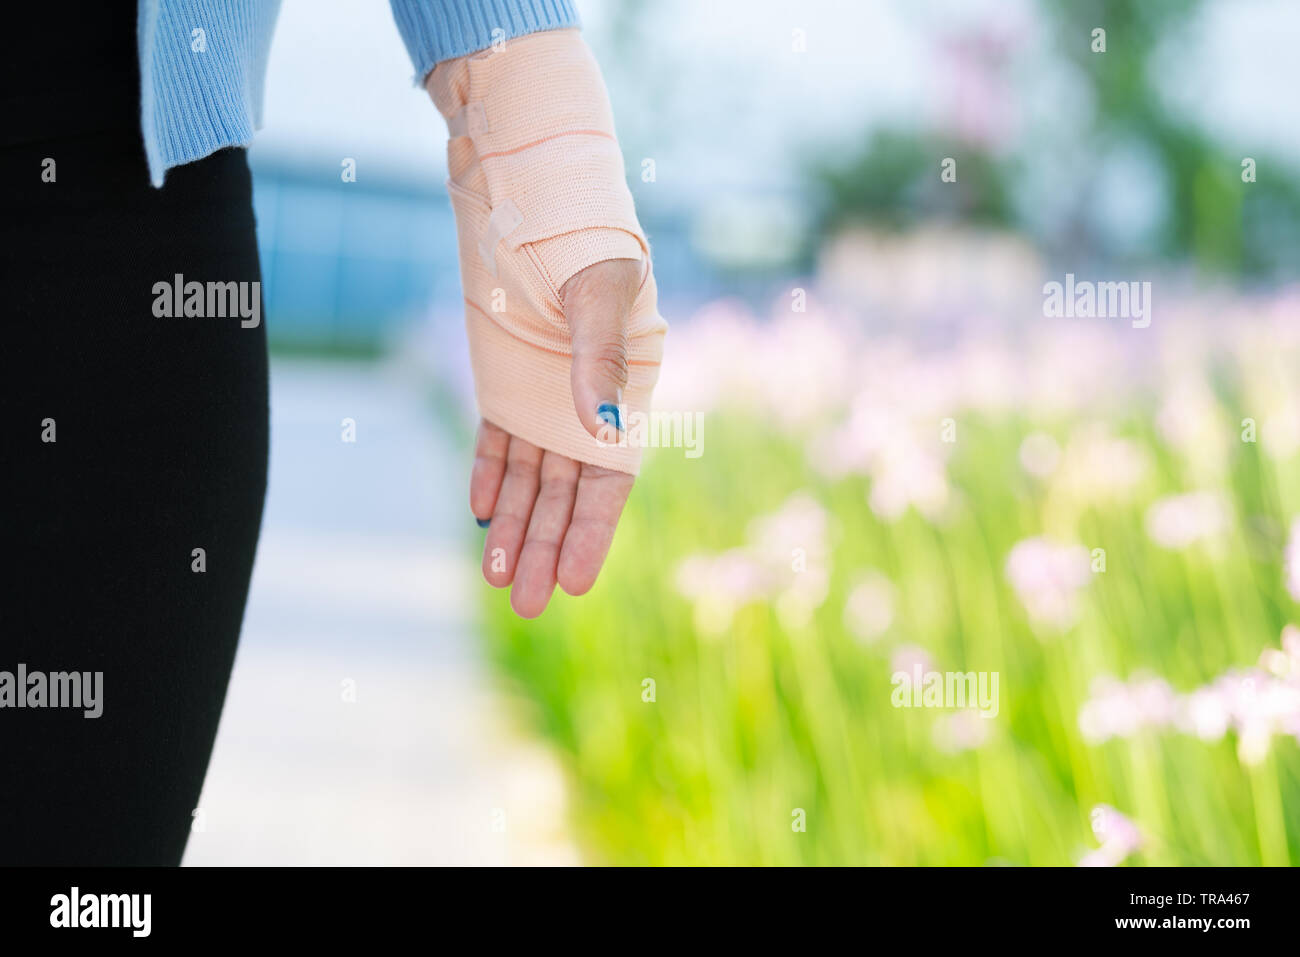 Arm Splint Injured Female Hand With Lower Body Hand Bandage With